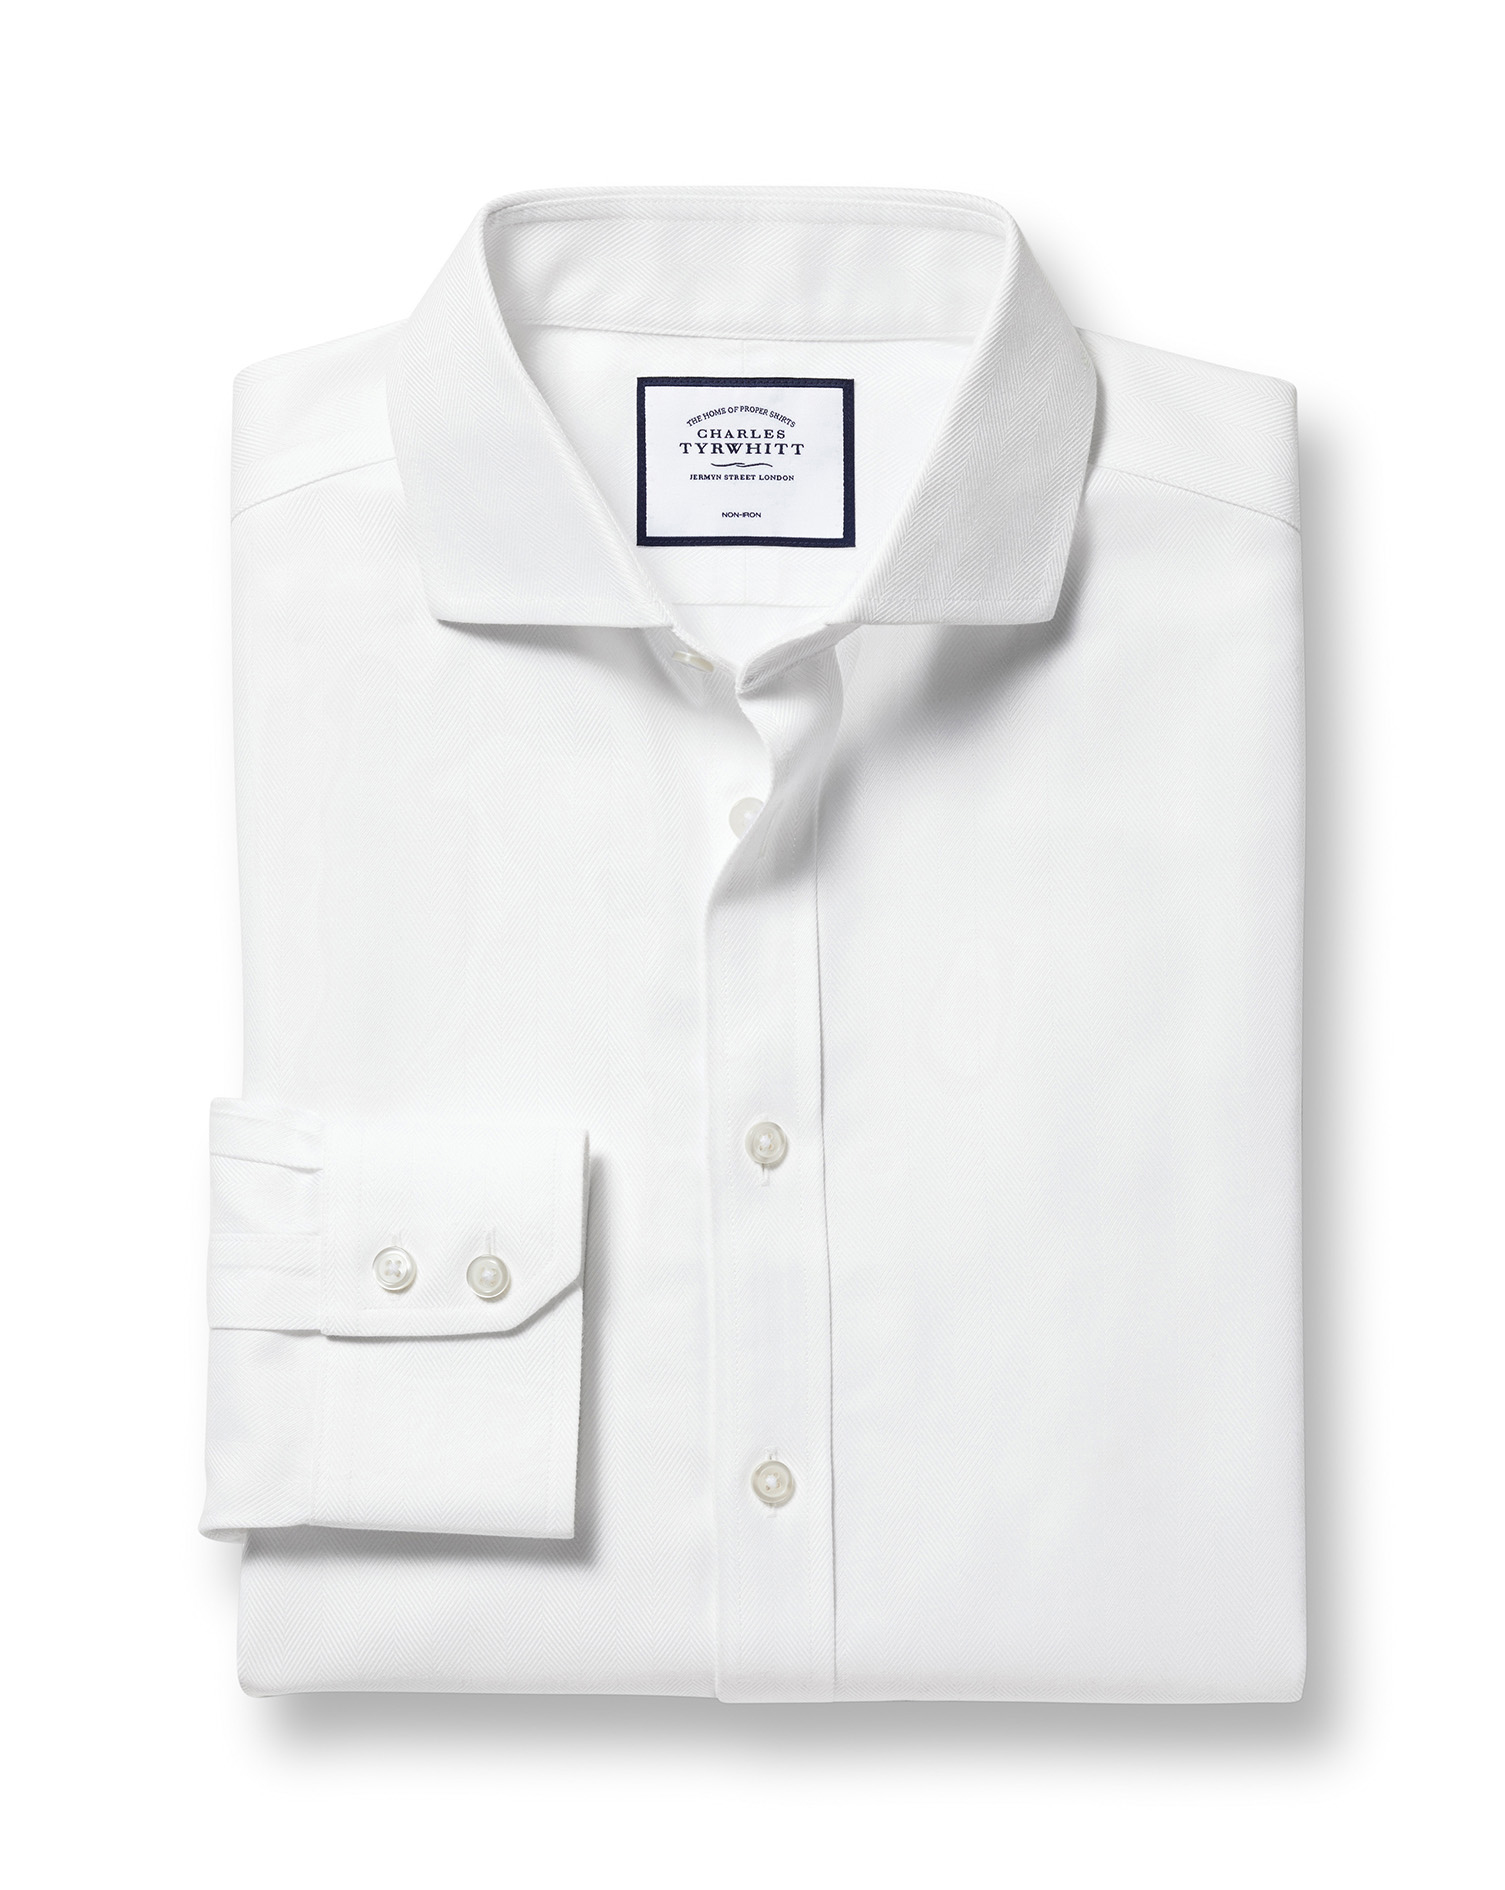 Extra Slim Fit Cutaway Non-Iron Herringbone White Cotton Formal Shirt Double Cuff Size 17/34 by Char